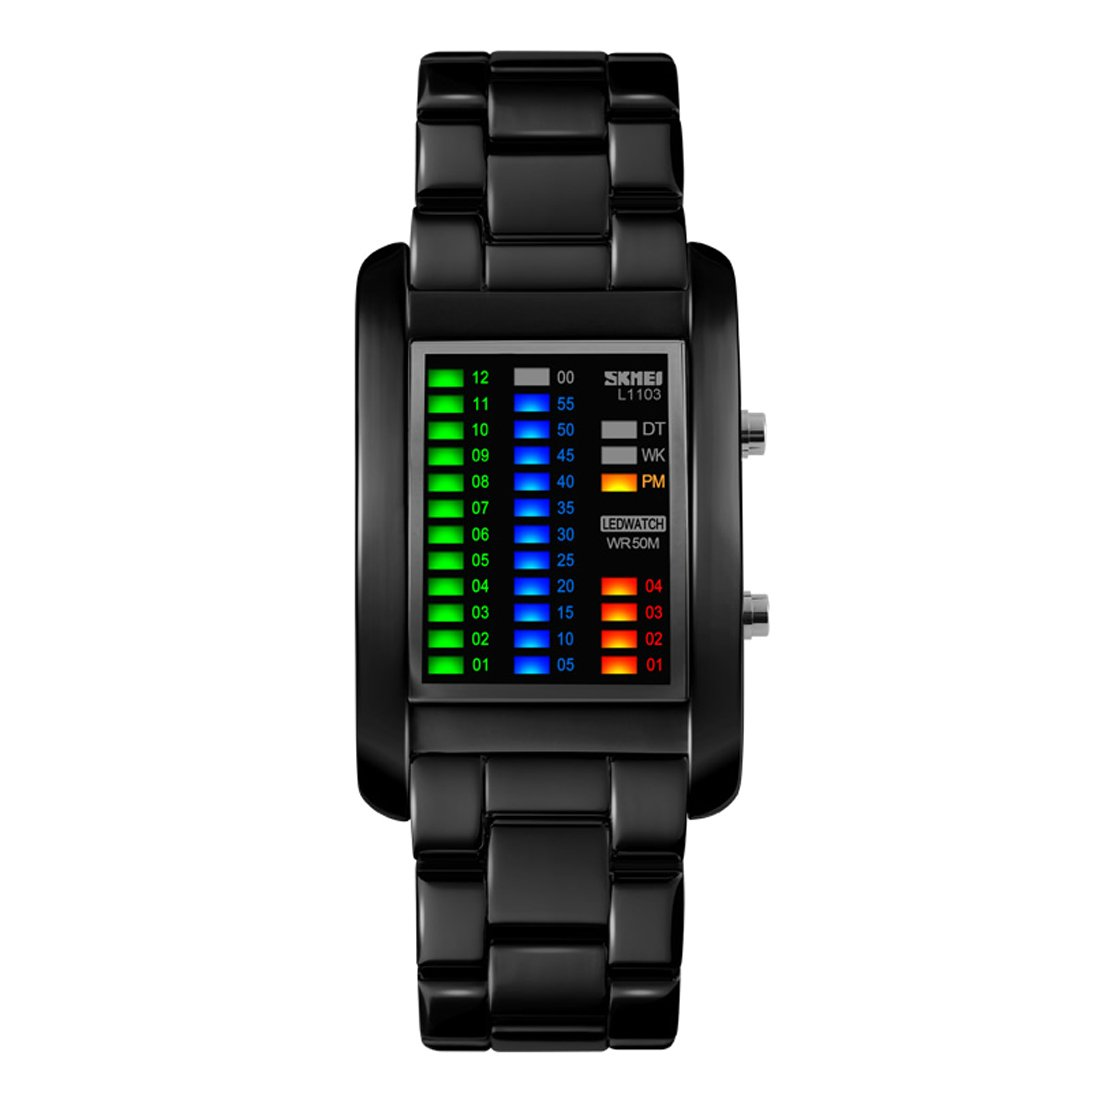 Leather pu stylish band led wrist watch recommend dress in winter in 2019